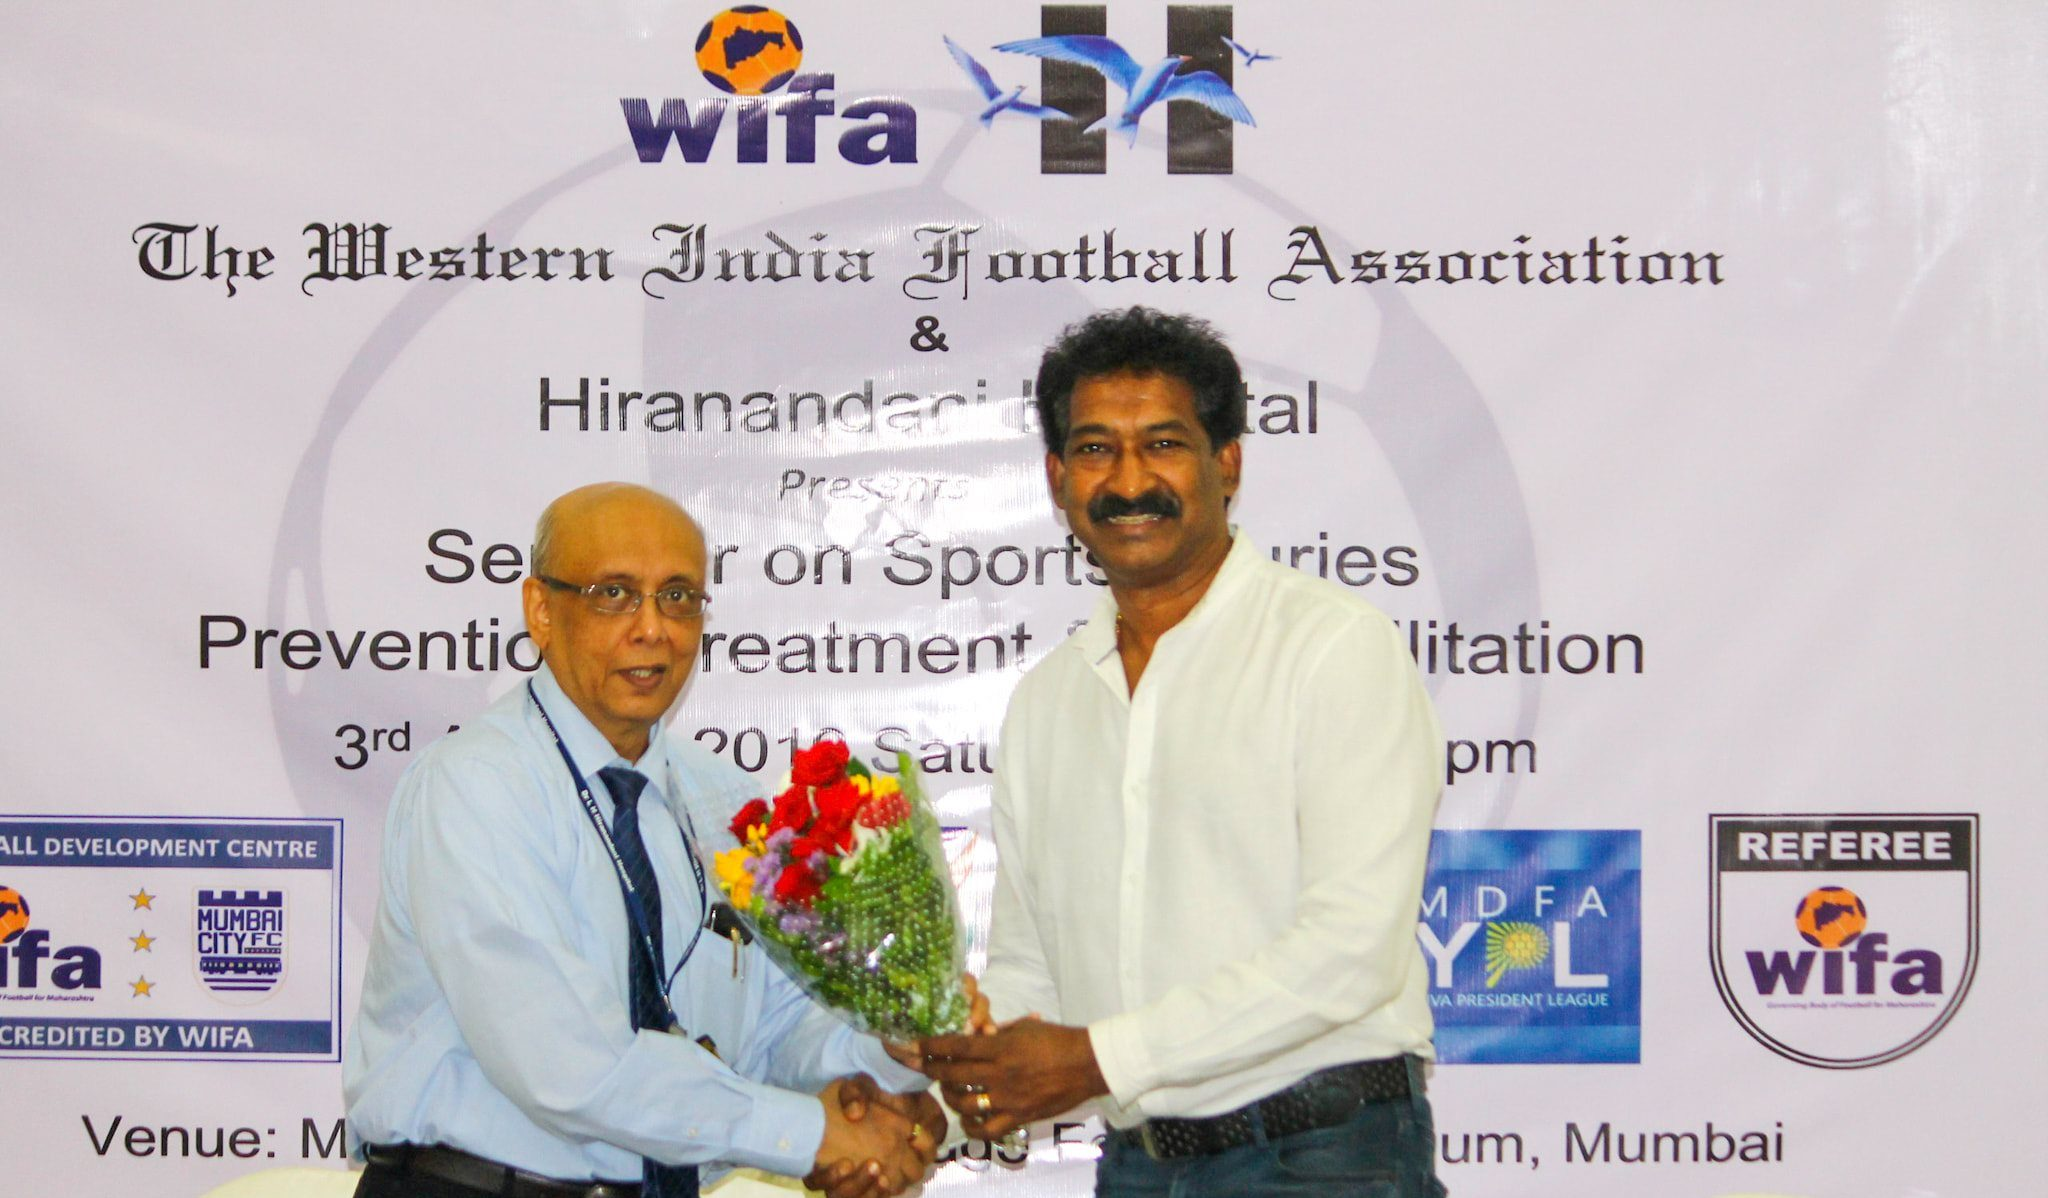 WIFA – Hiranandani Hospital alliance offers economical medical expenses for footballers